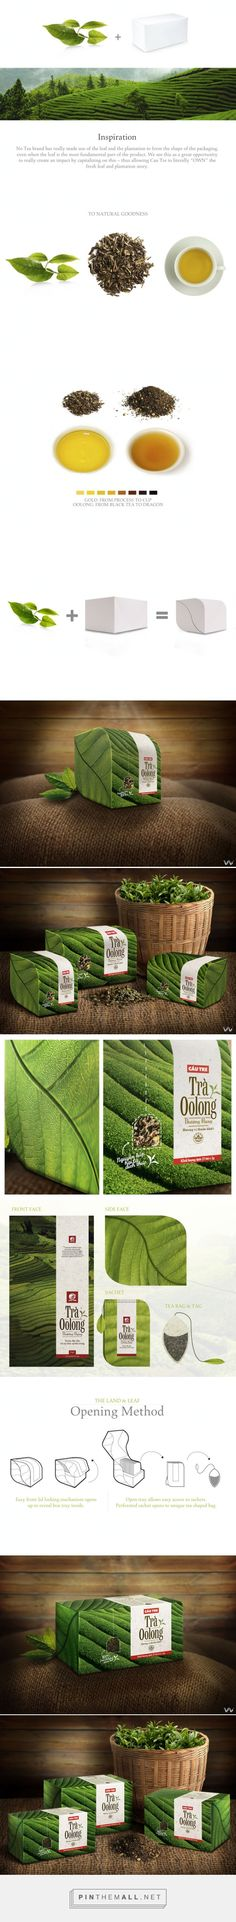 Cau Tre Oolong #Tea #packaging by Wildfire Collaborative - http://www.packagingoftheworld.com/2015/02/cau-tre-oolong-tea.html - created via http://pinthemall.net